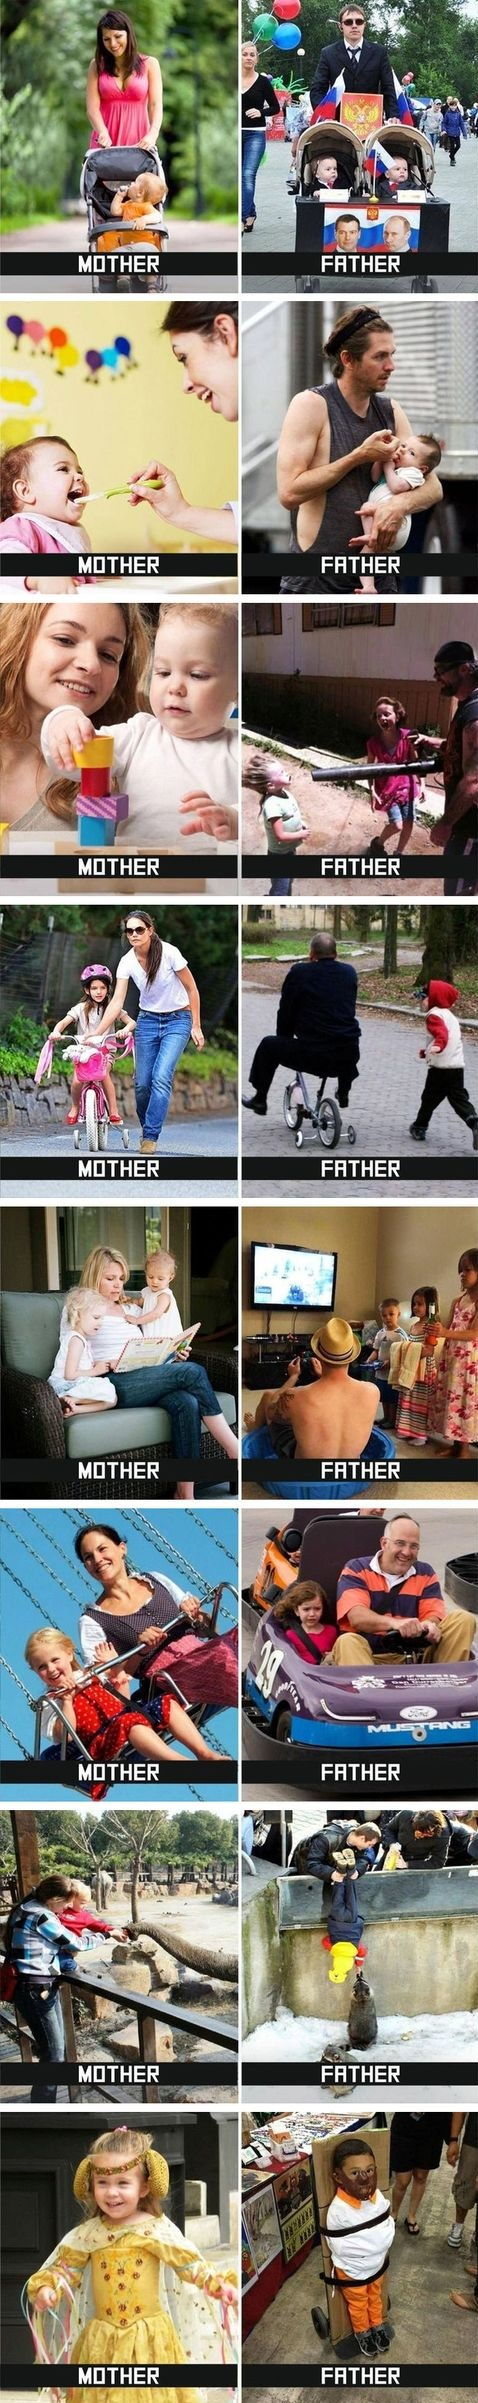 mother-father-kids-coments